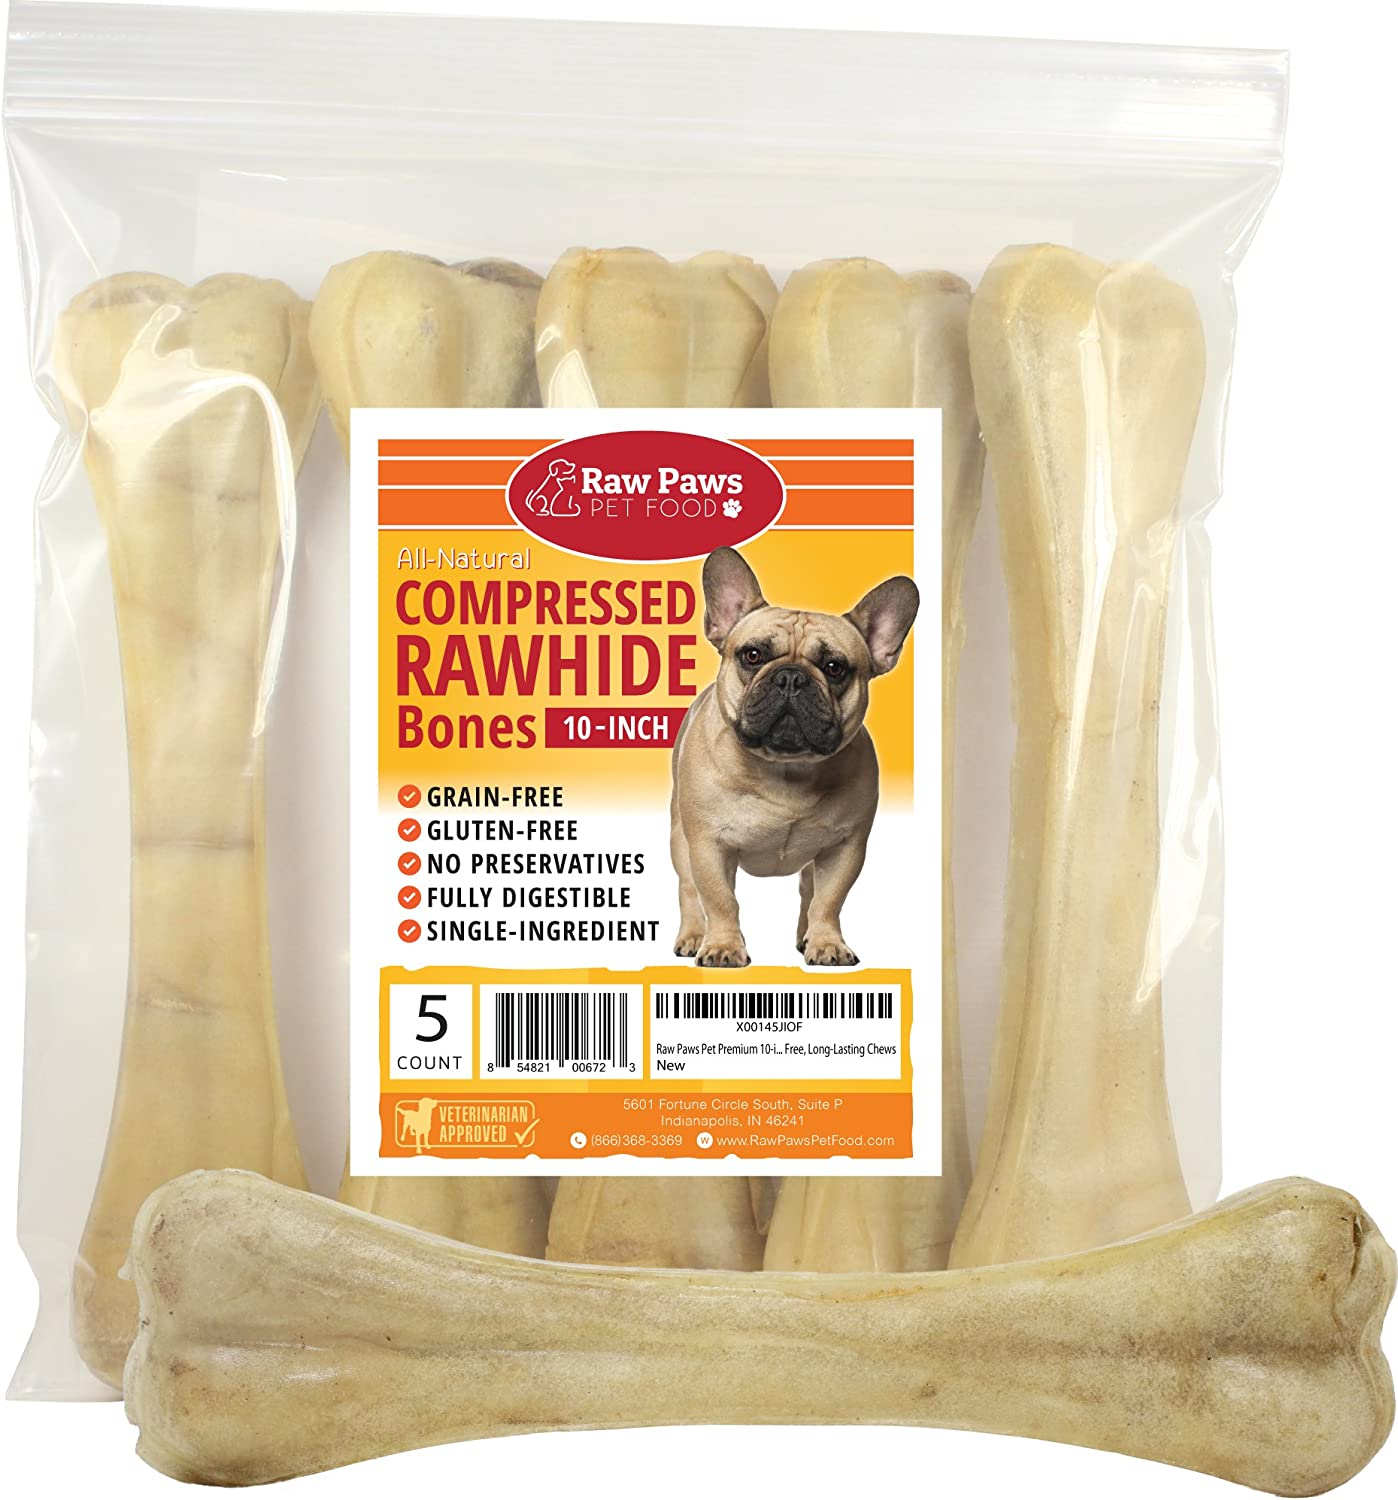 Raw Paws Pet Premium 10-inch Compressed Rawhide Bones for Dogs – Packed in USA – Long Lasting Dog Chews – Natural Pressed Rawhides – Large Dog Bones – Beef Hide Bones for Aggressive Chewers